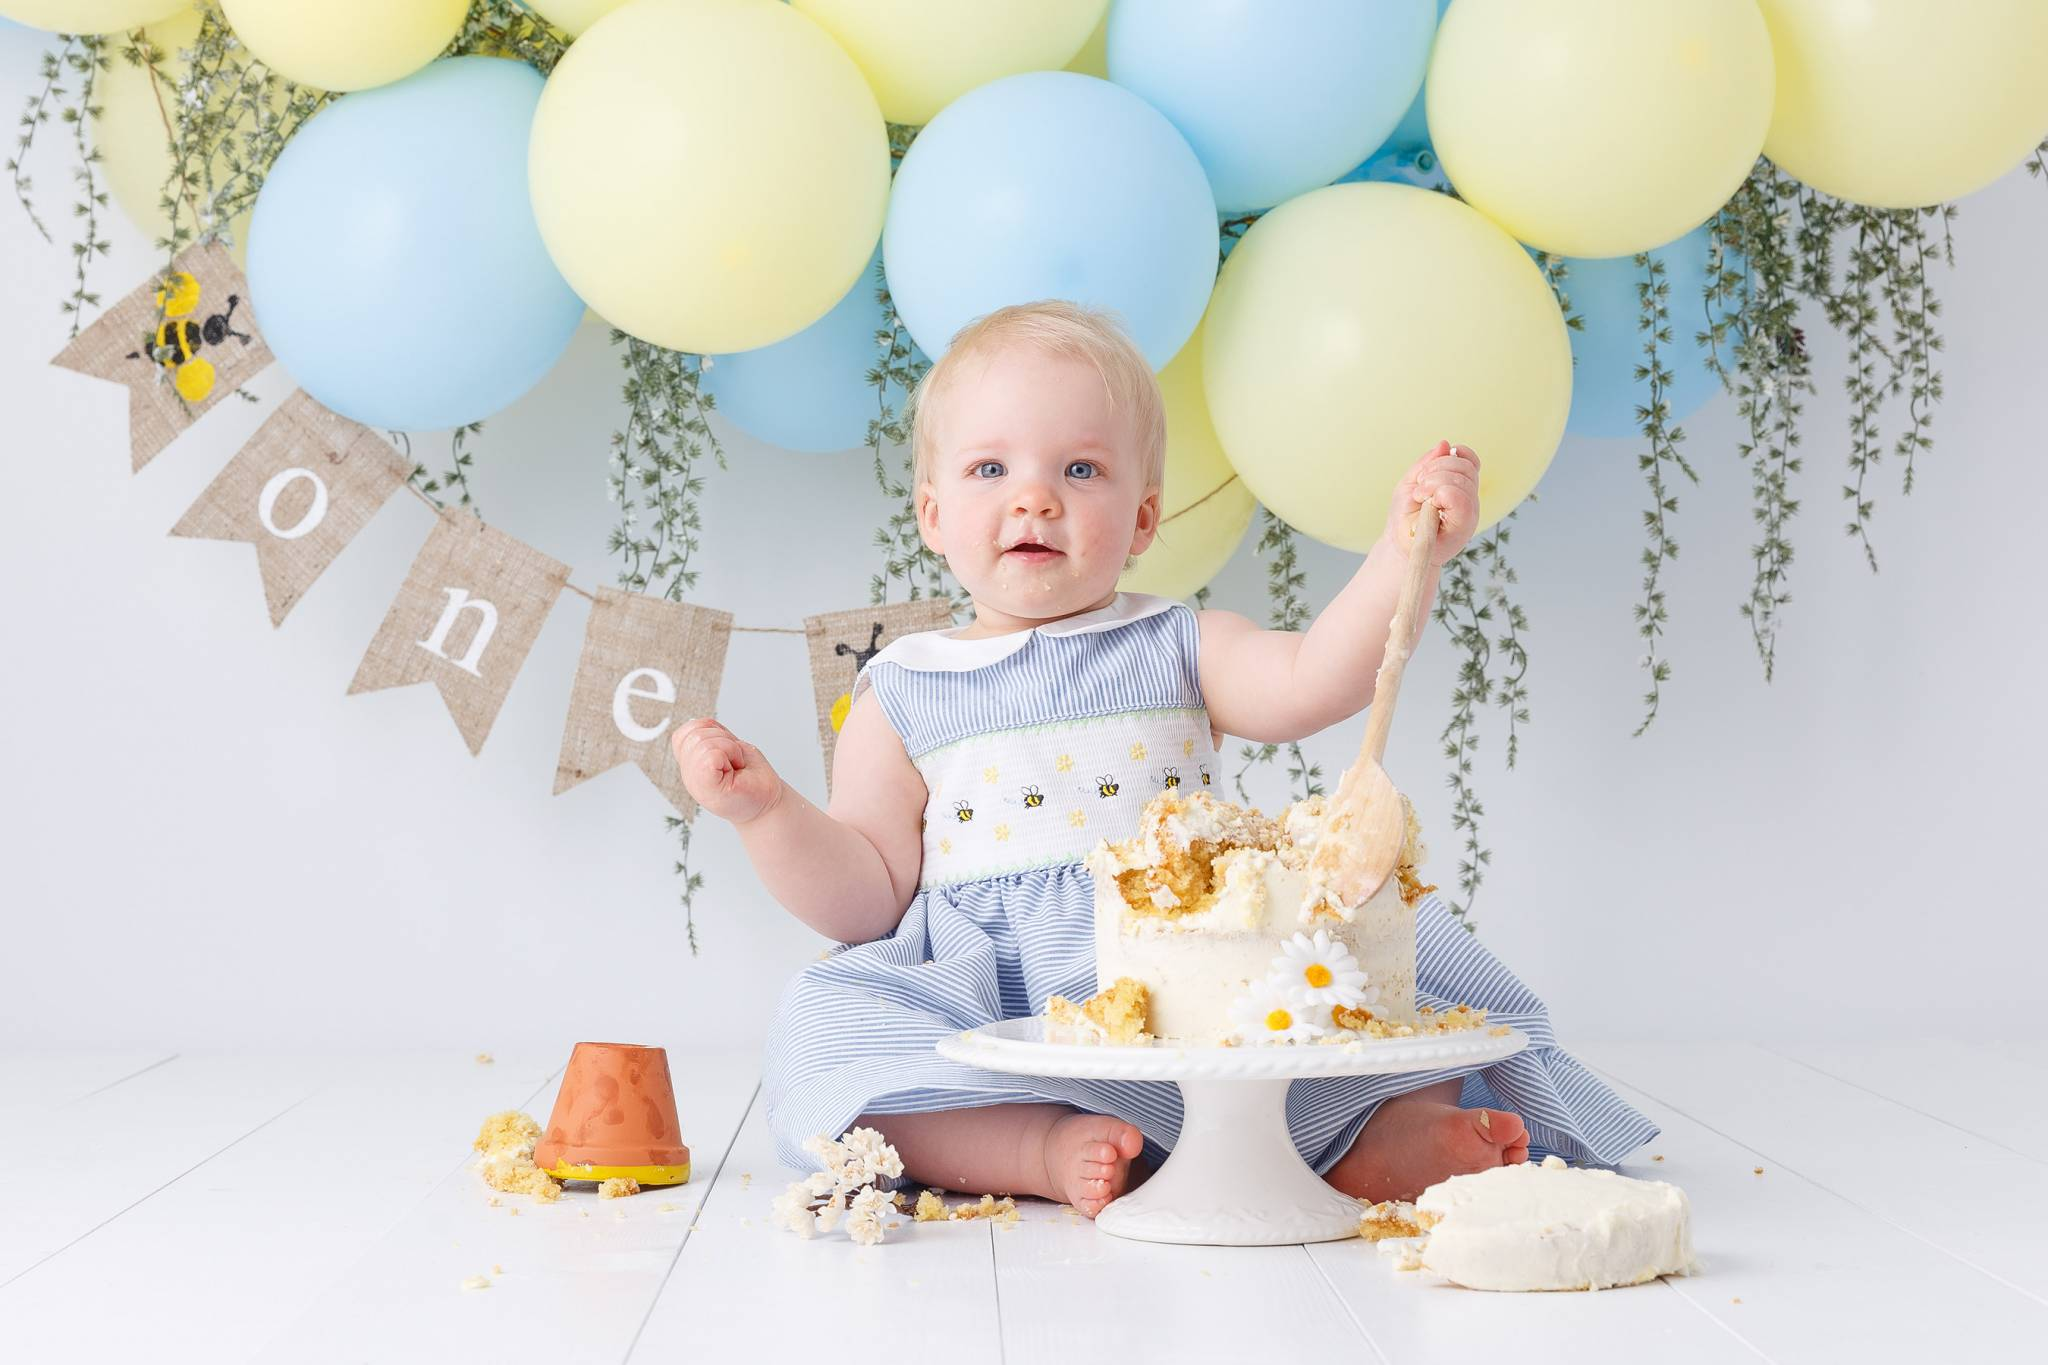 Cake Smash Photography, High Wycombe, Buckinghamshire, Baby, 1st Birthday, studio photoshoot